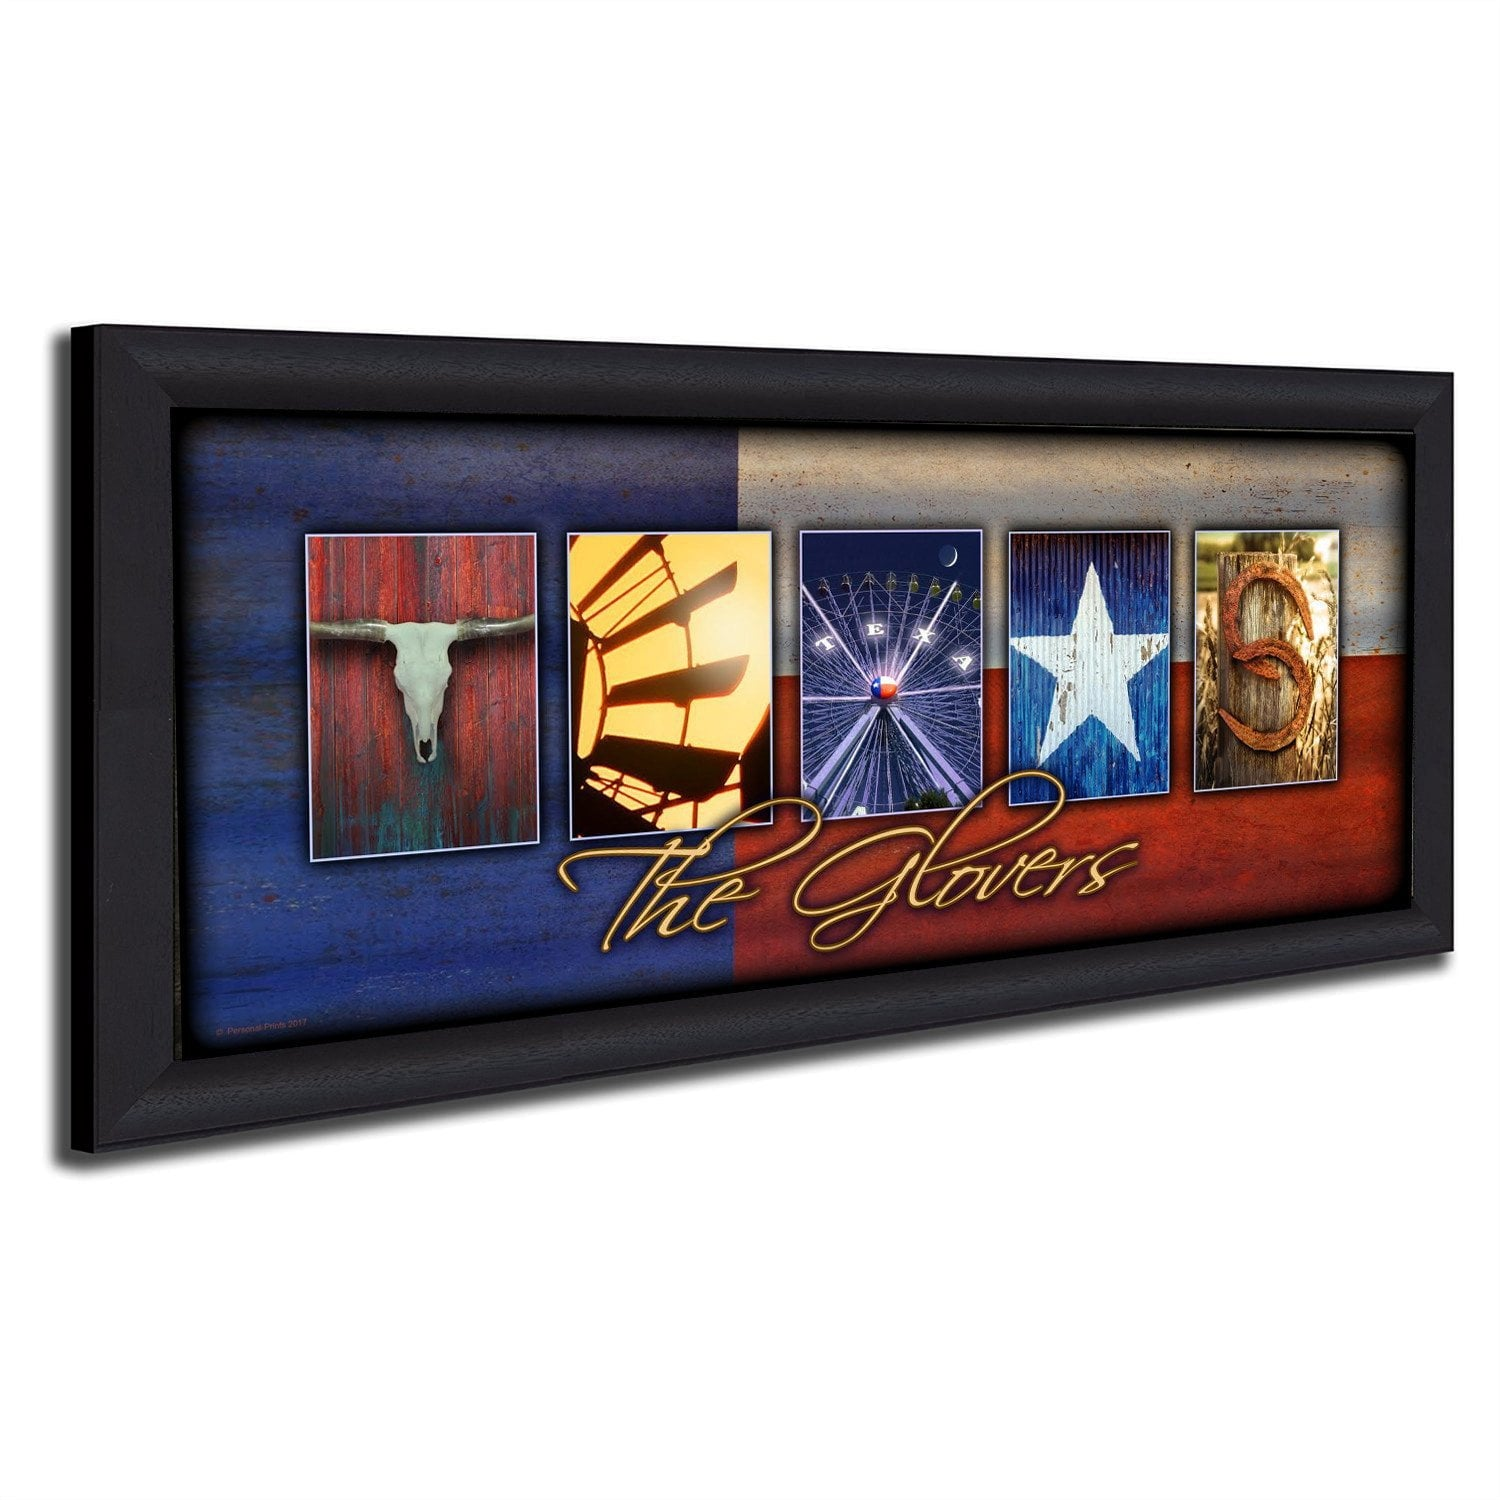 Framed Texas Art | State Art | Personalized Art - Personal-Prints